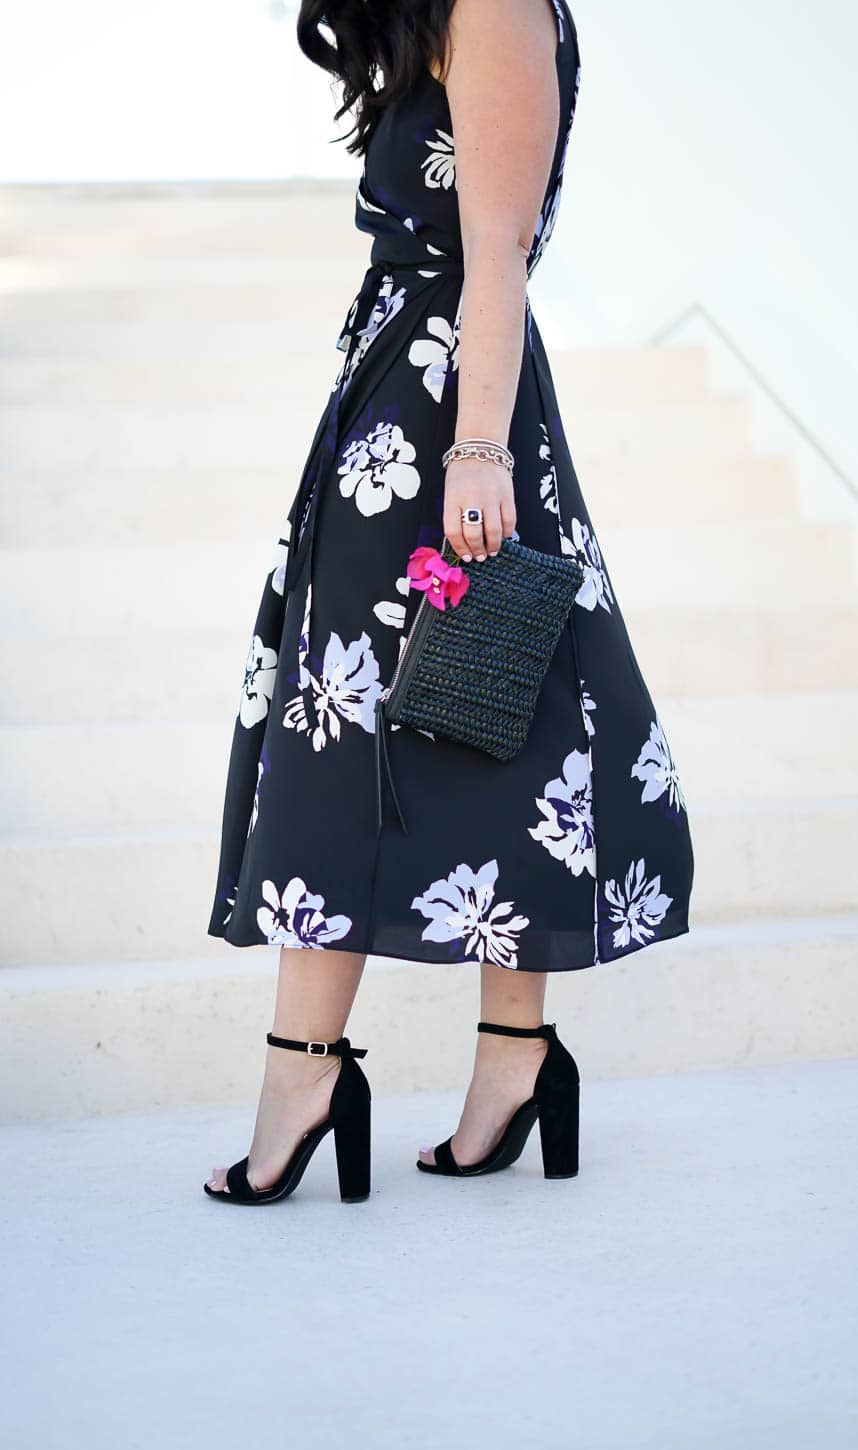 5 Spring Style Essentials, Banana Republic Floral Wrap Dress, Banana Republic Woven clutch, A Lily Love Affair, Chicago Blogger, J.Crew Fedora, Vacation Style